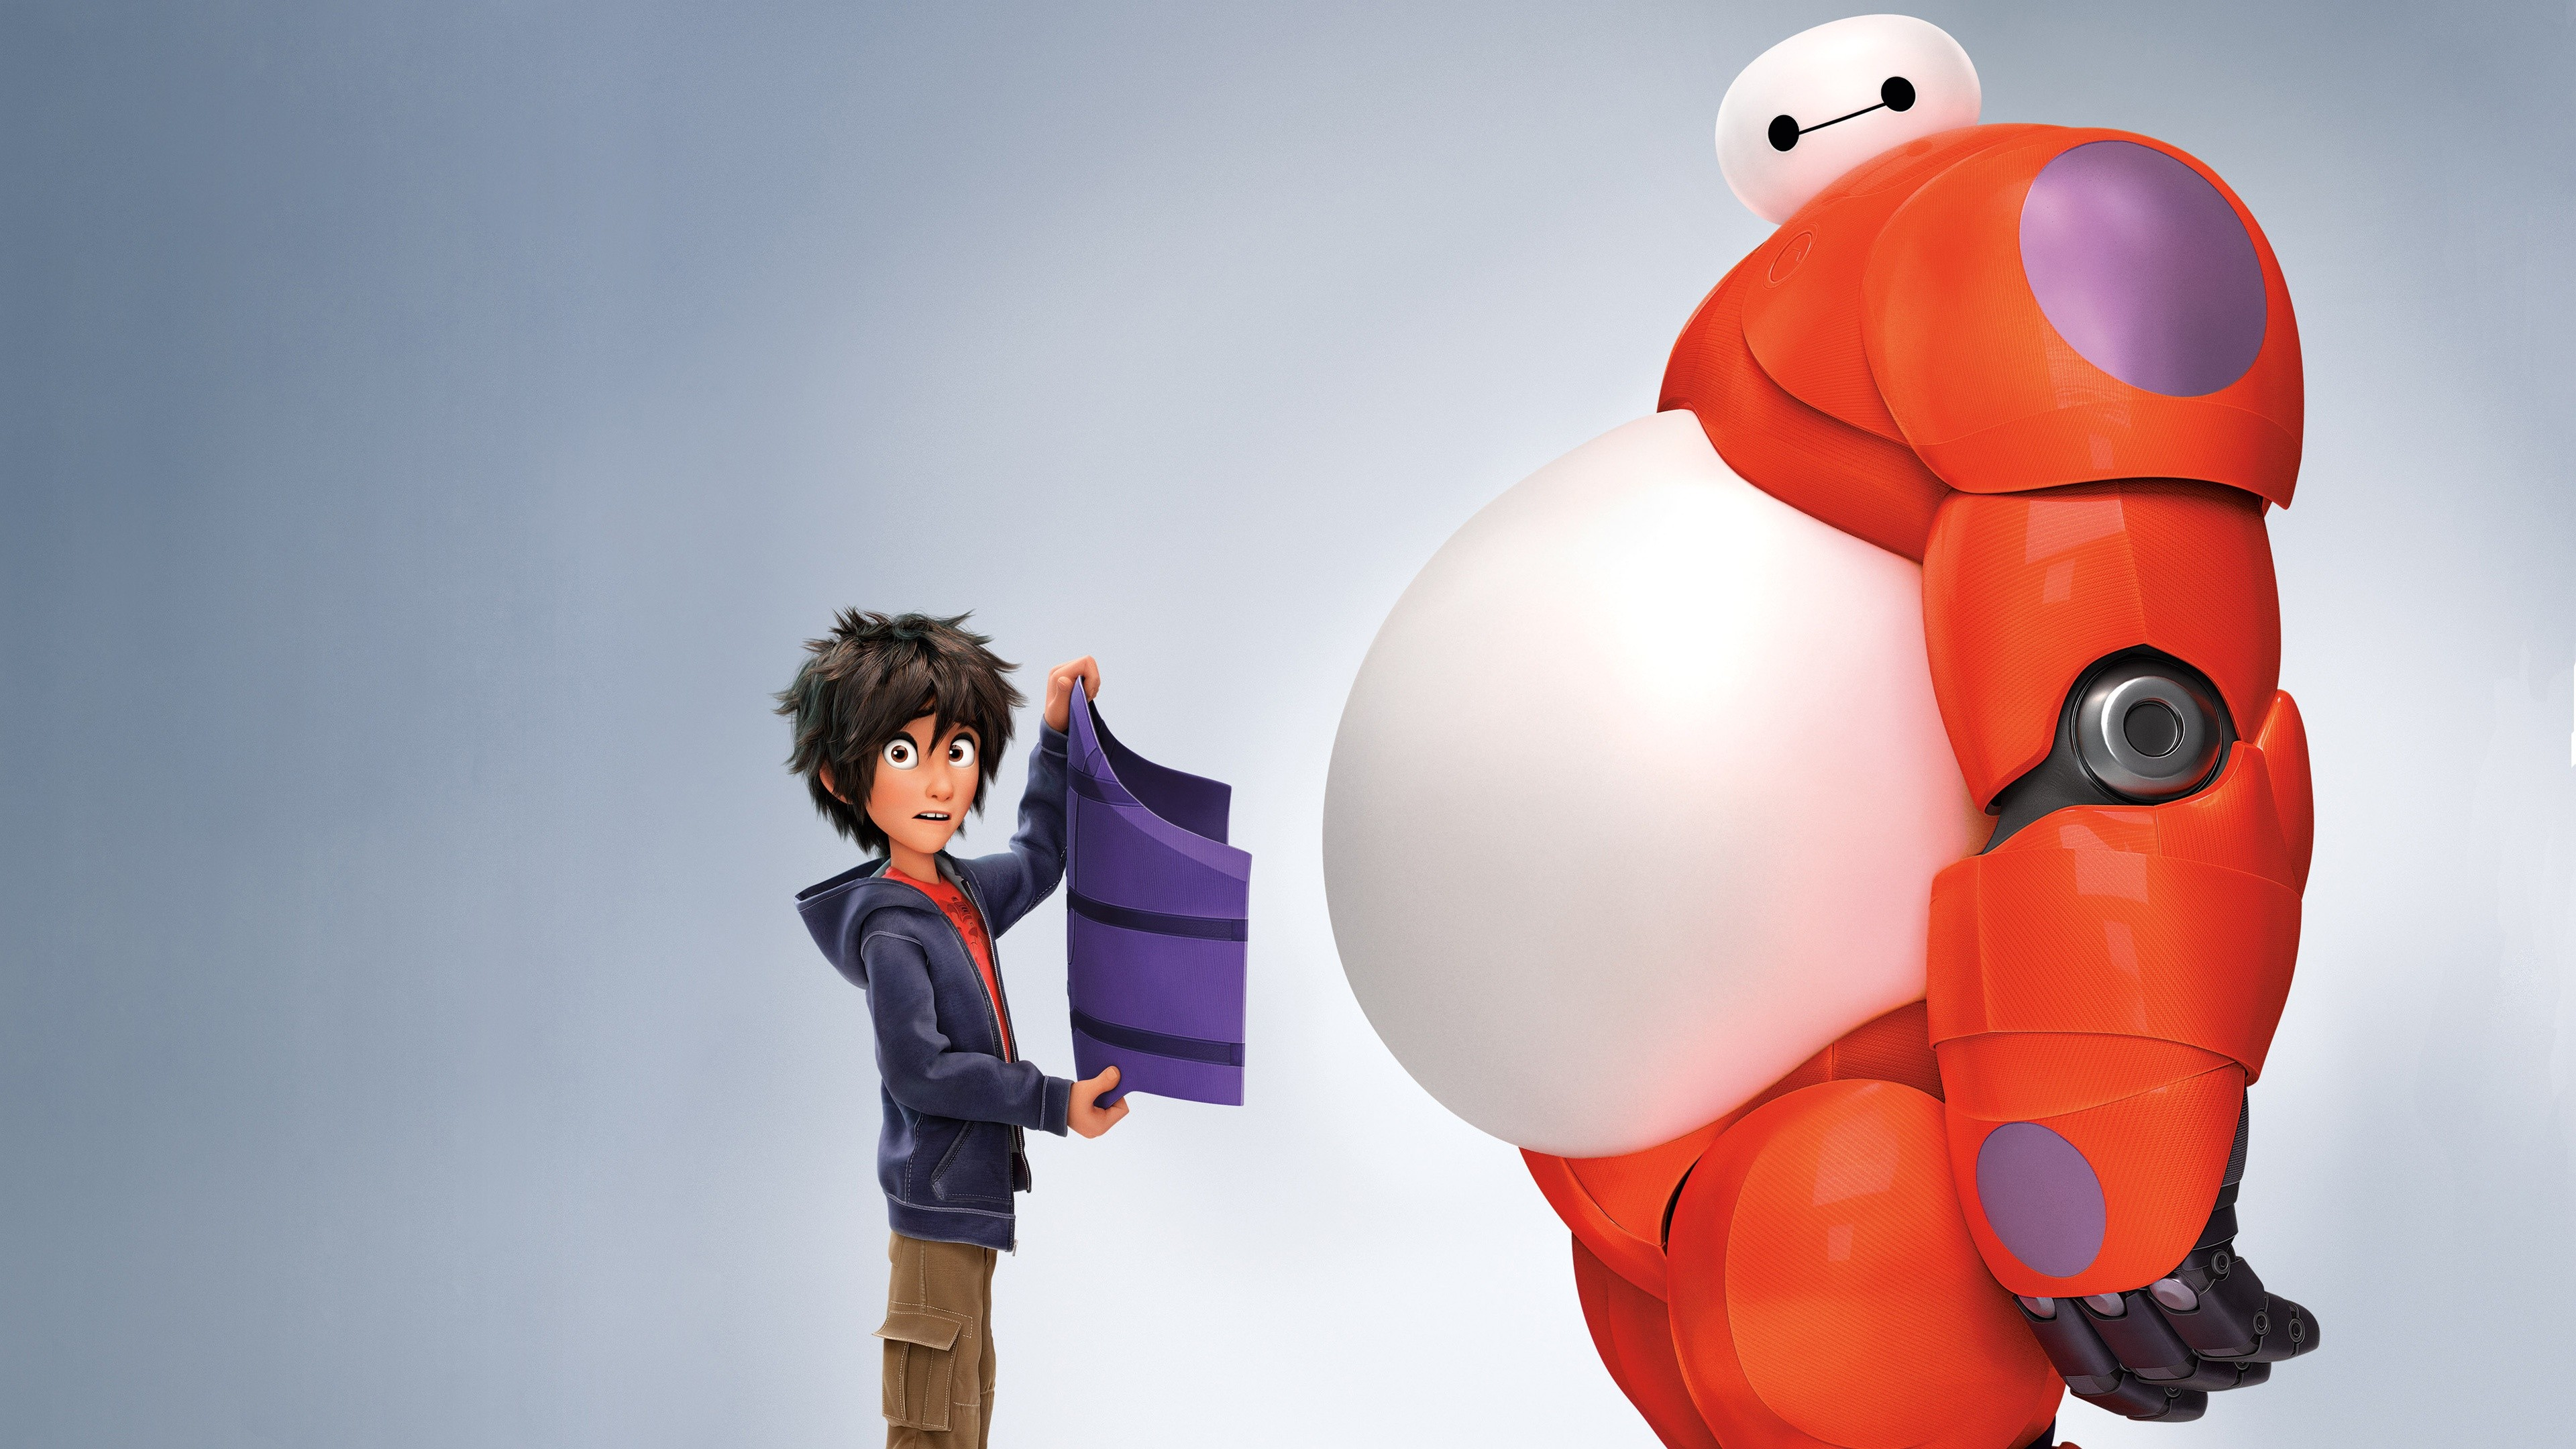 Wallpaper Big Hero 6, cartoon, Baymax, Hiro Hamada ...